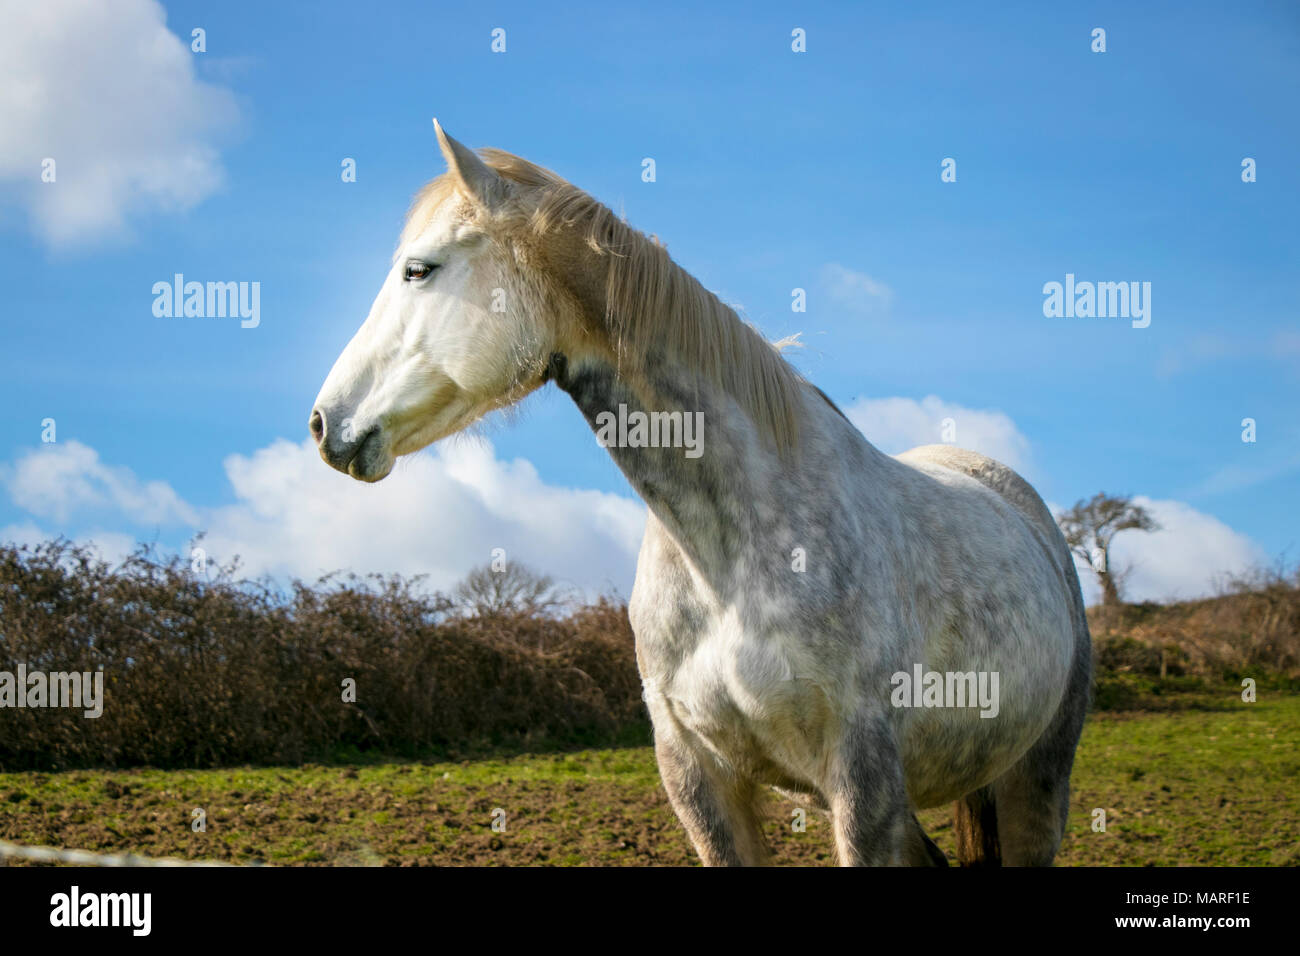 Portrait of beautiful white horse standing in green hillside against blue sky with trees in the background Stock Photo